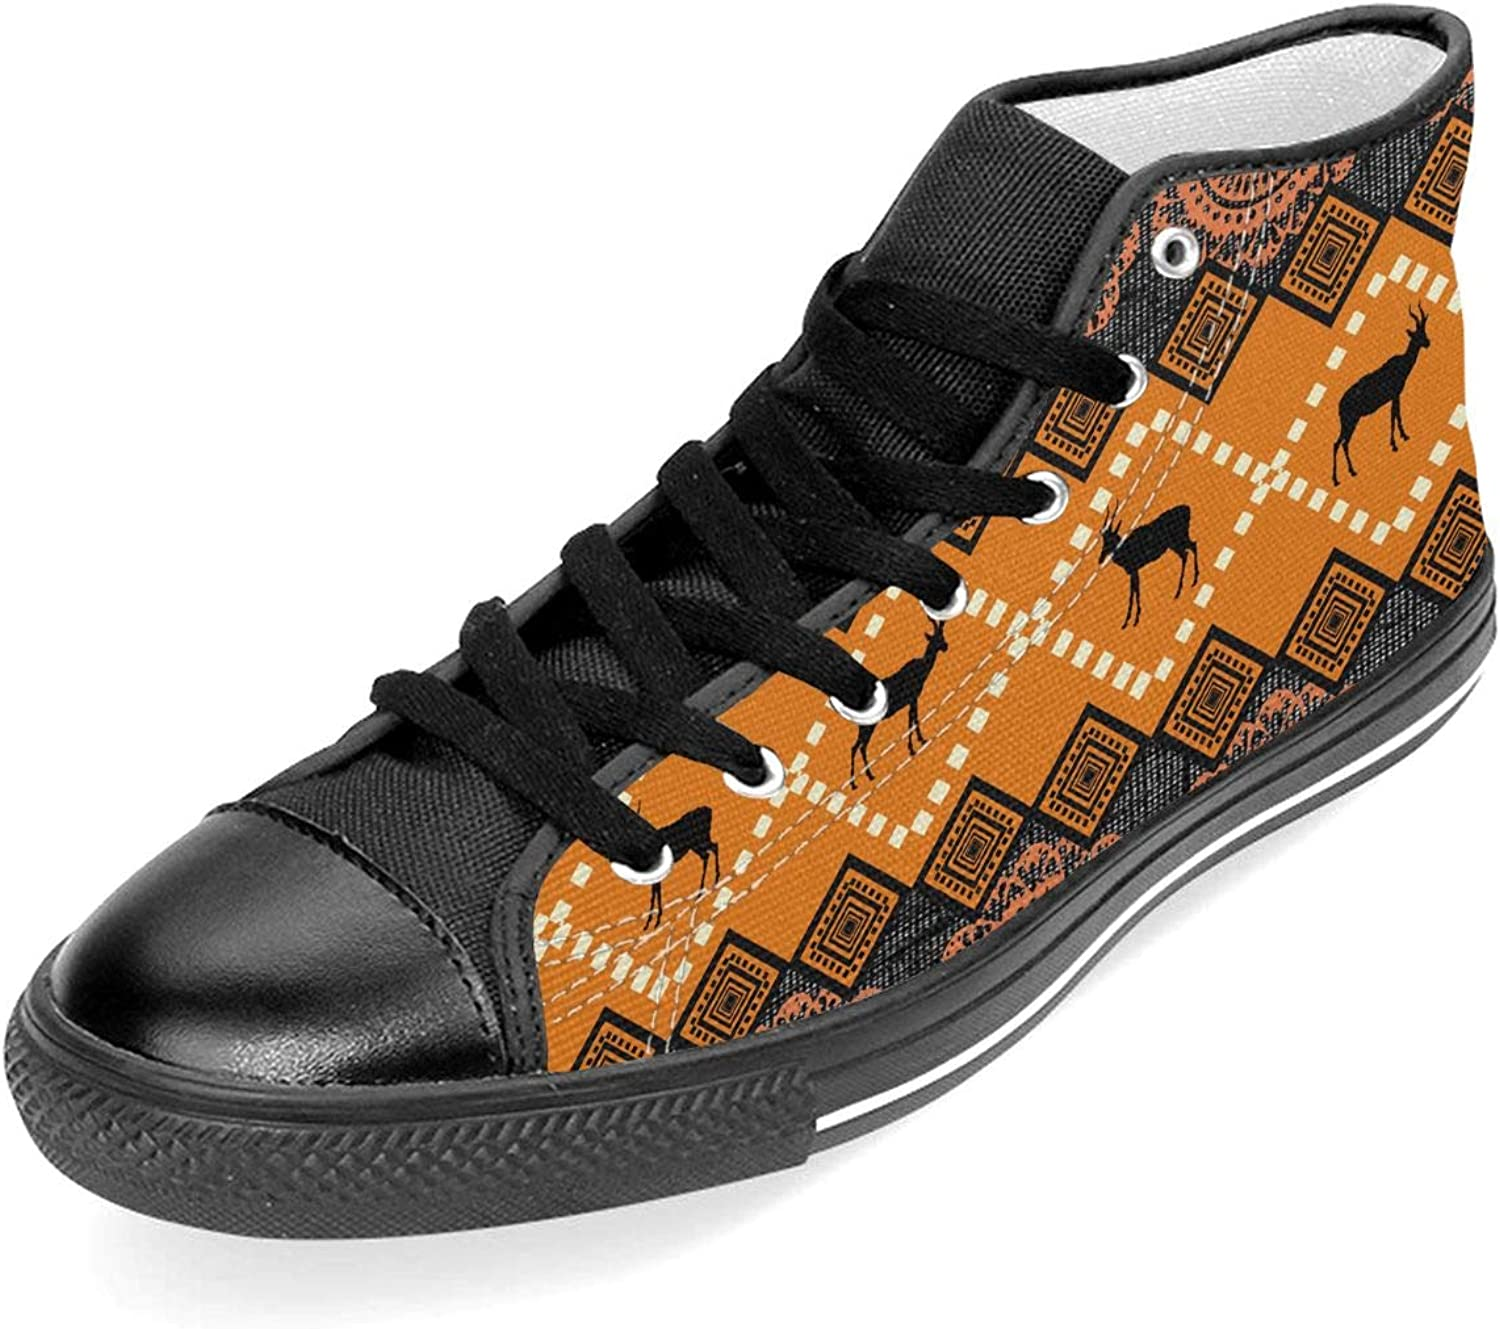 TARDIGA Modern African Pattern Unisex High Top Classic Canvas shoes Rubber Sole Lace Up Trainer shoes